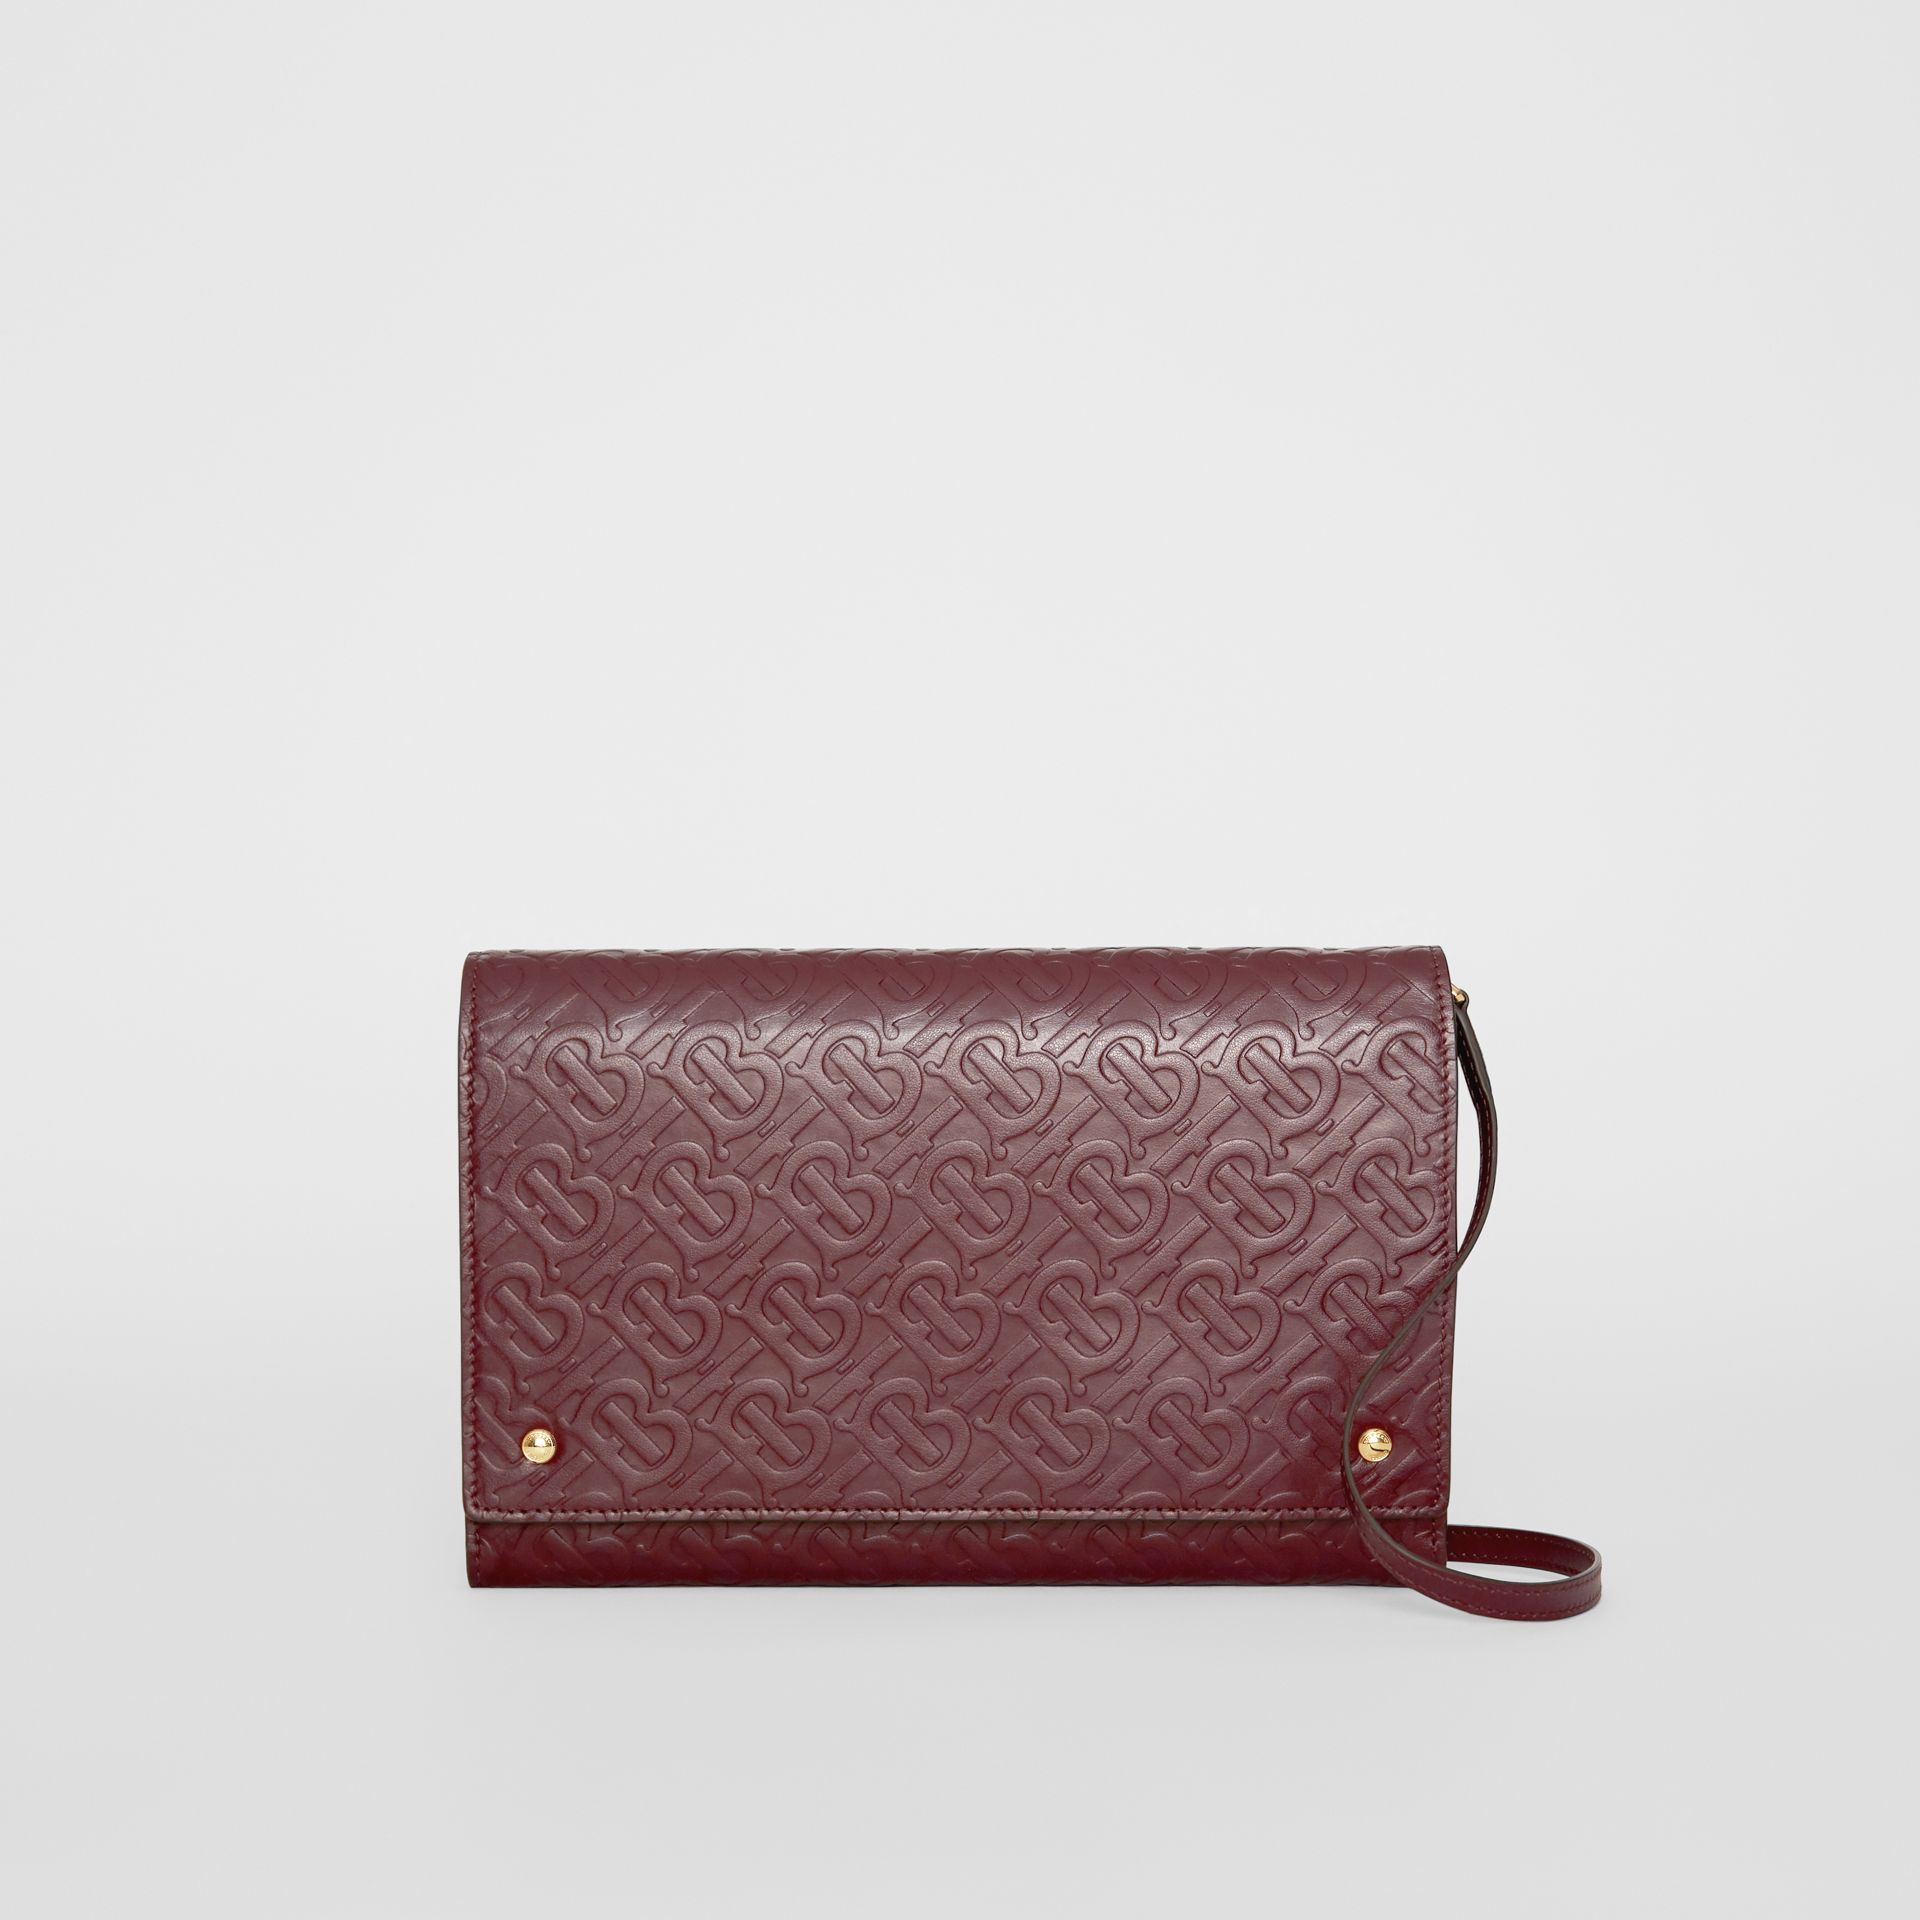 Small Monogram Leather Bag with Detachable Strap in Oxblood - Women | Burberry - gallery image 0